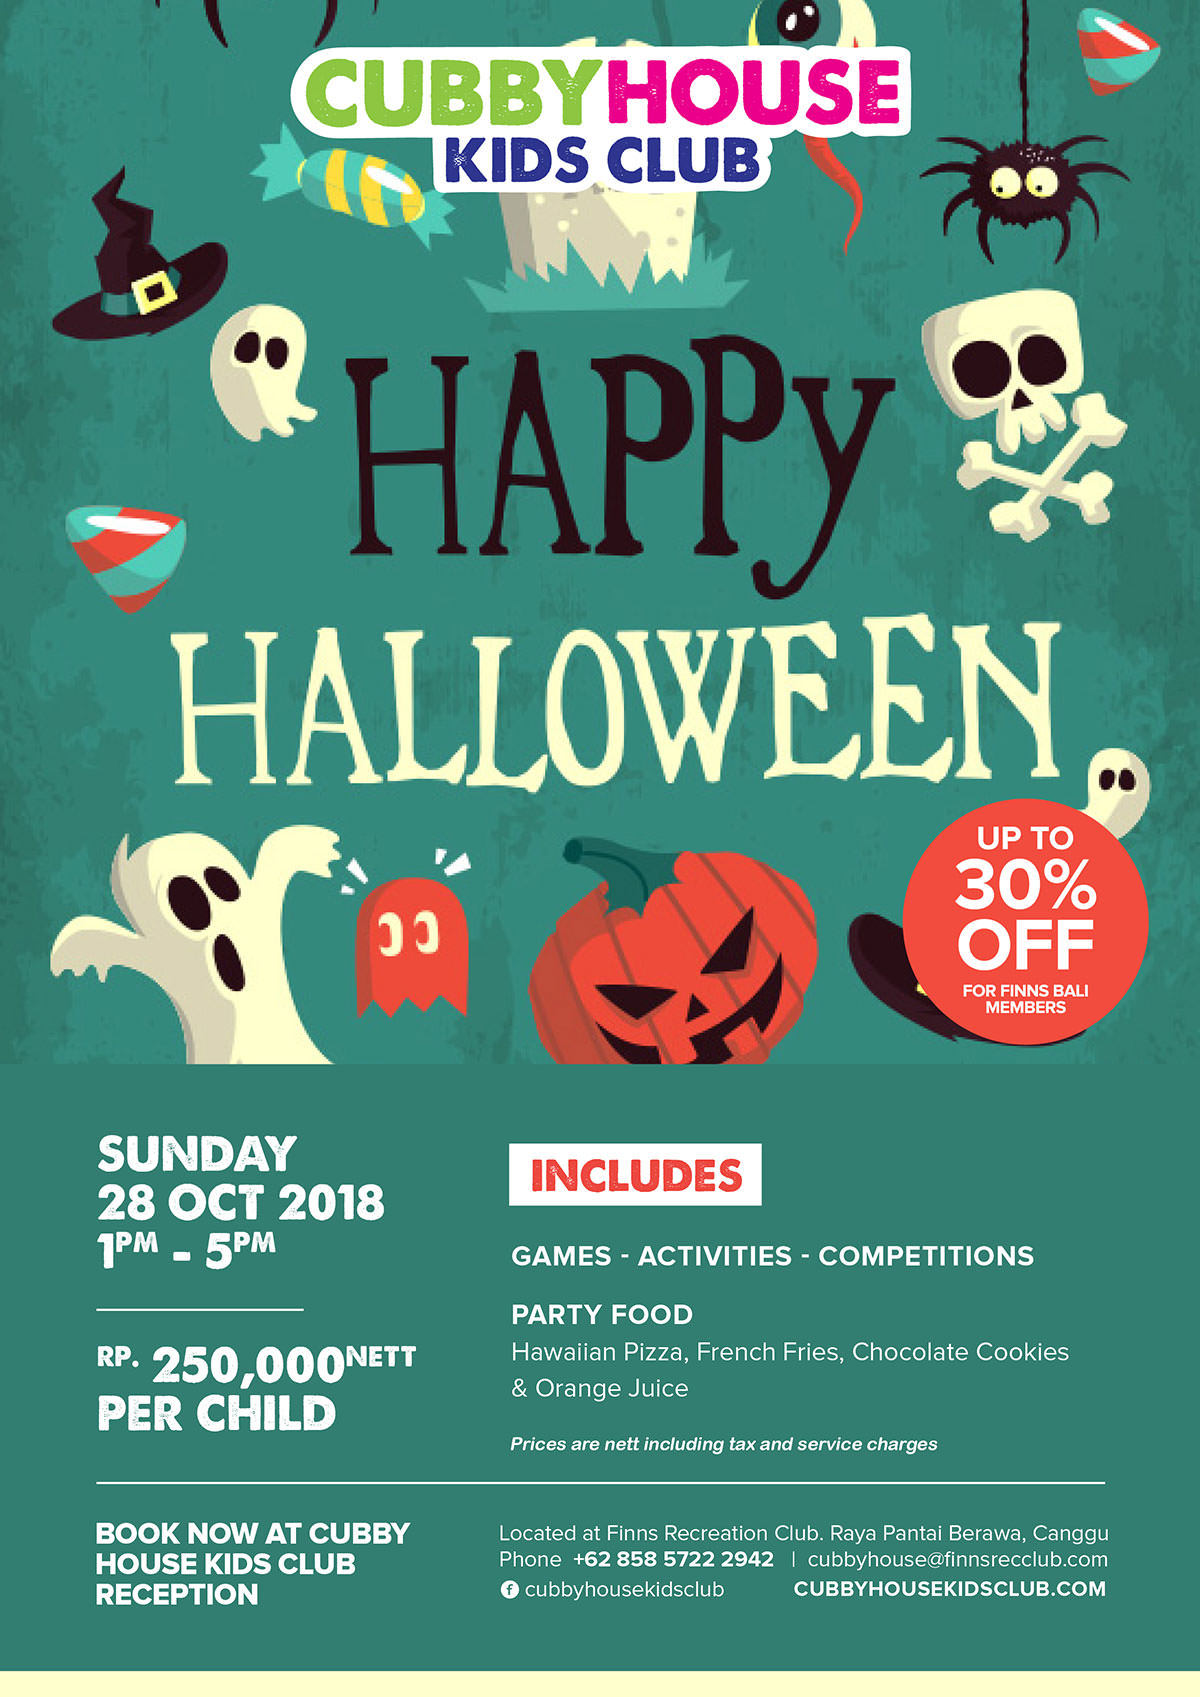 Happy Halloween - 28 October 2018 - Cubby House Kids Club Bali